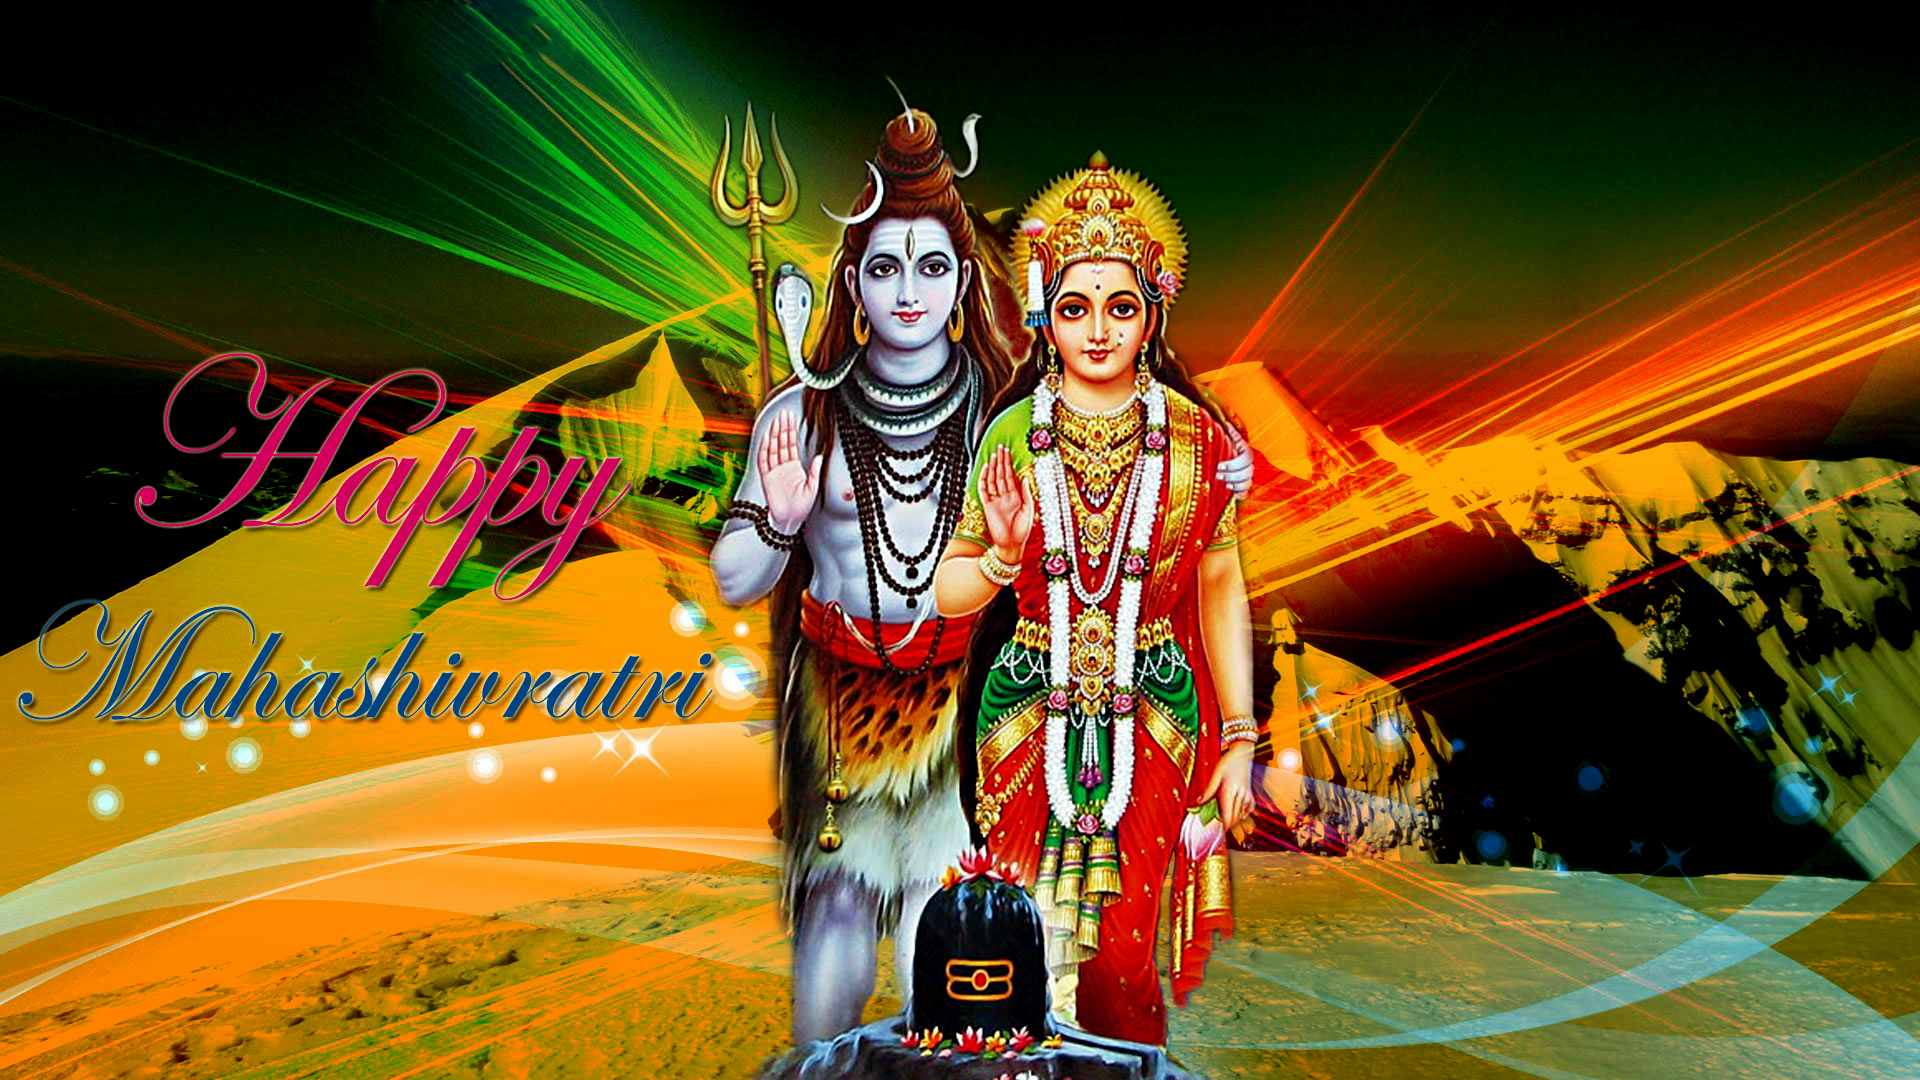 Happy Shivratri Shiv Parvati Hd Wallpapers For Android Mobile